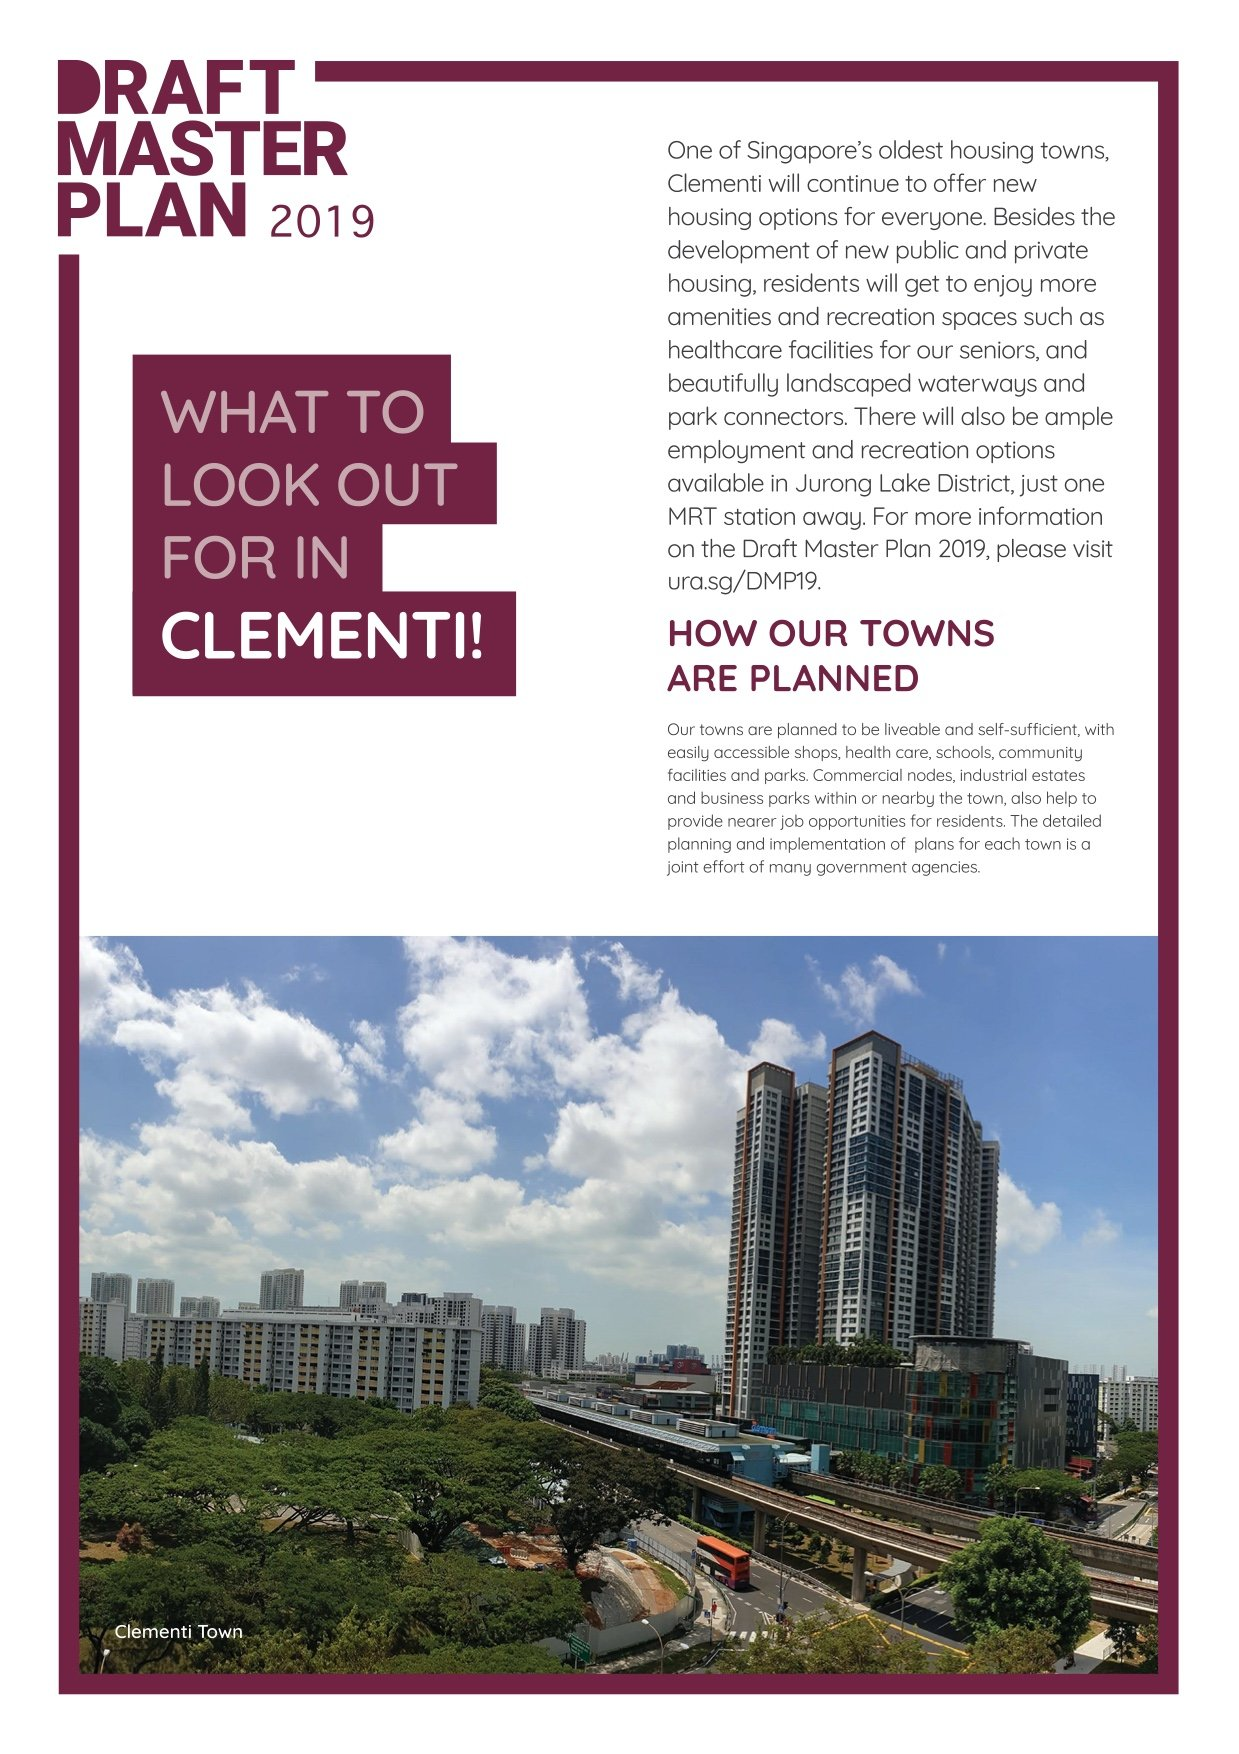 Changes in Clementi